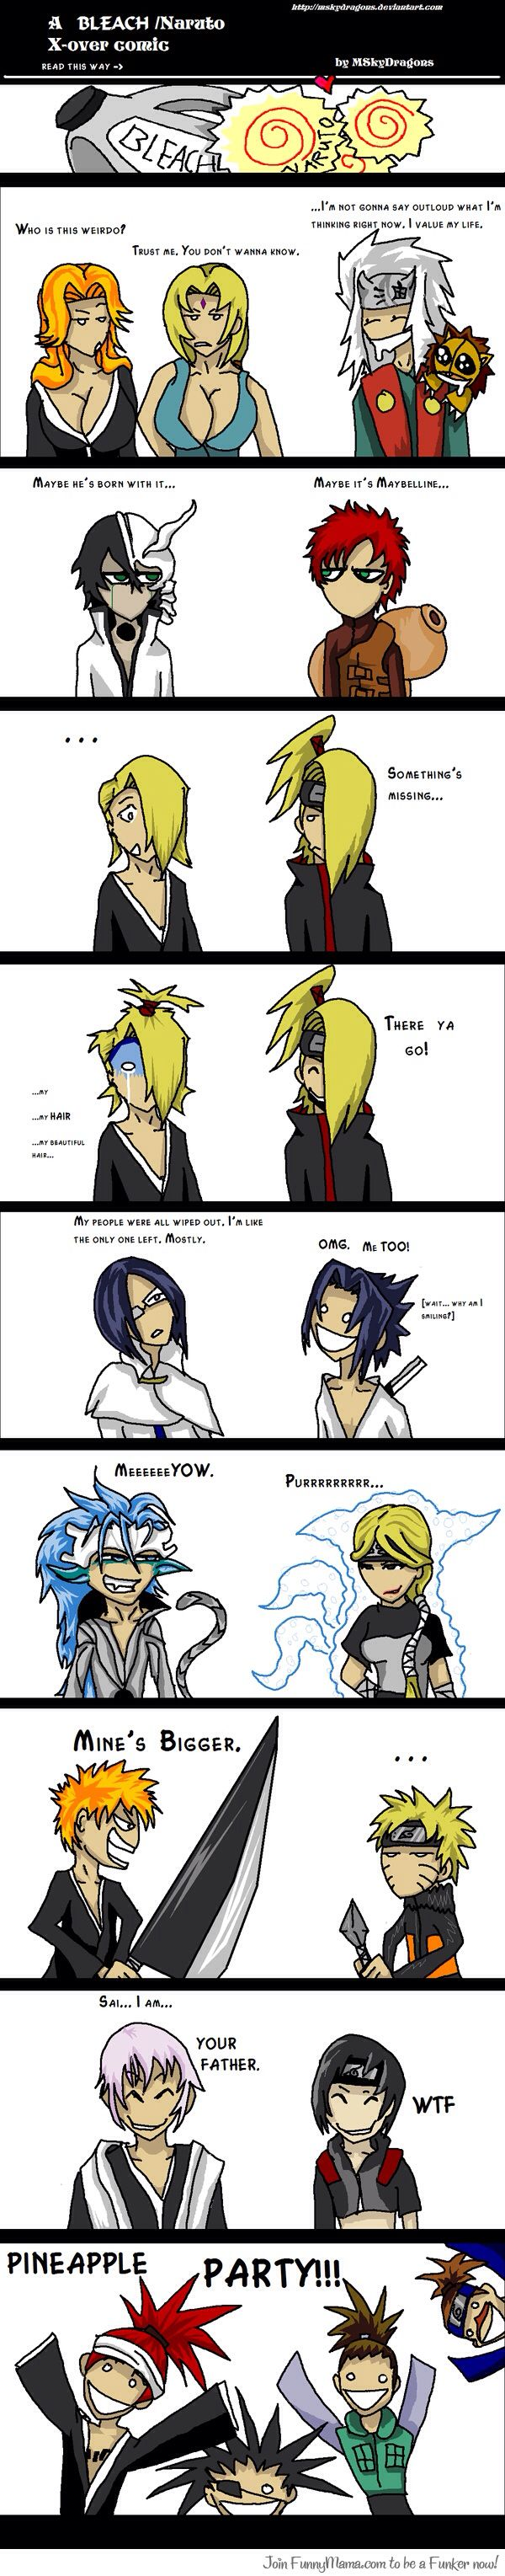 The last one killed me. X'D